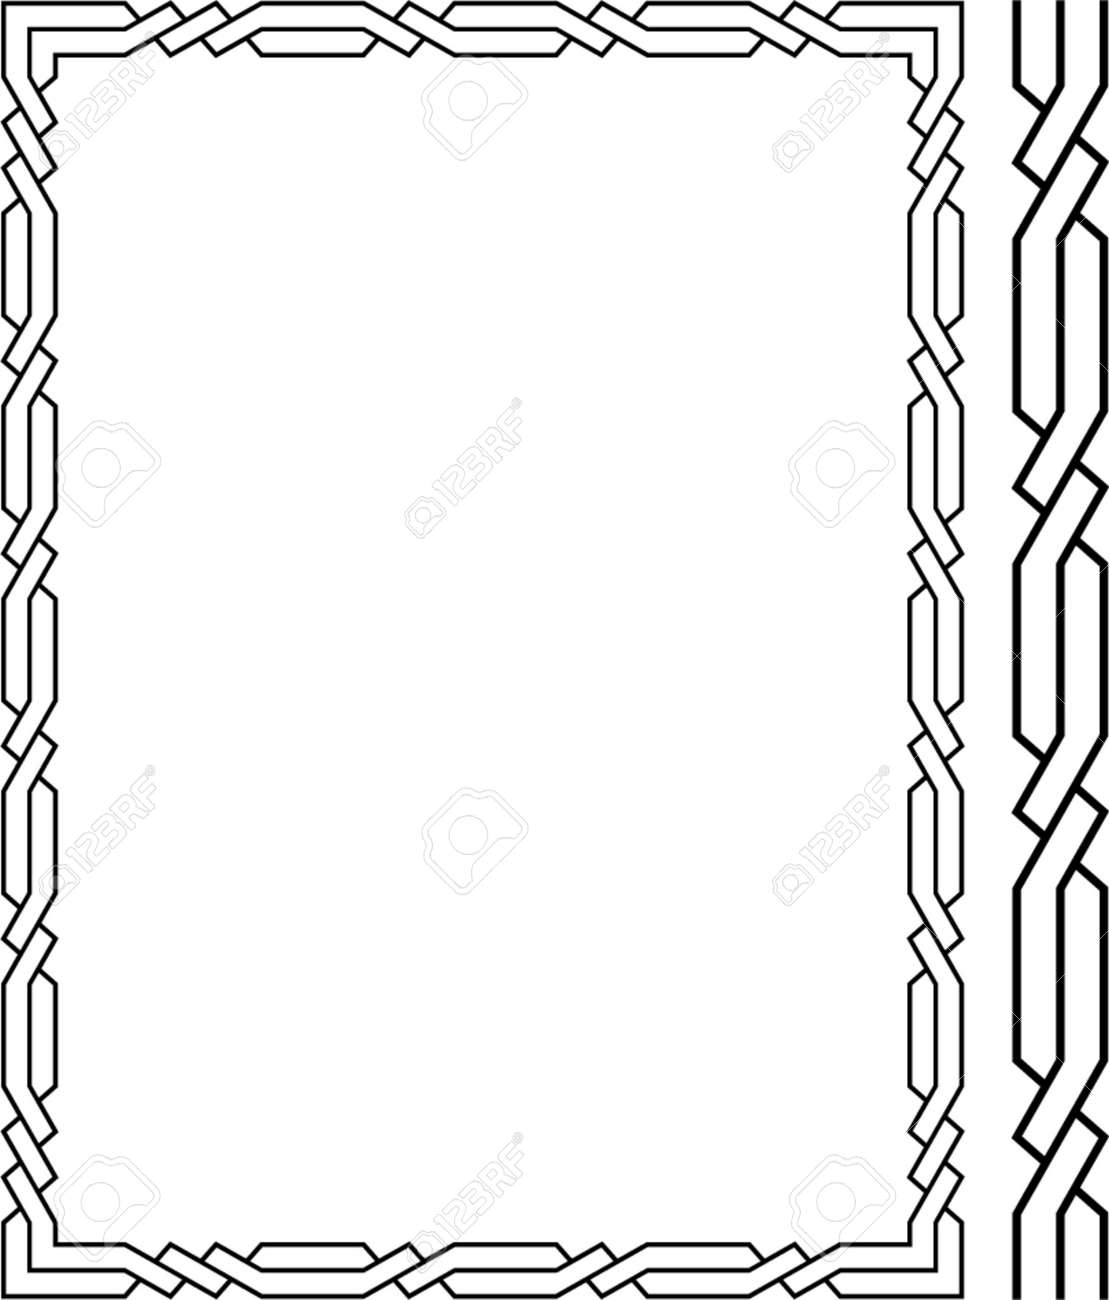 Vector decorative frame. This is a vector image - you can simply edit colors and shapes. Stock Vector - 562490